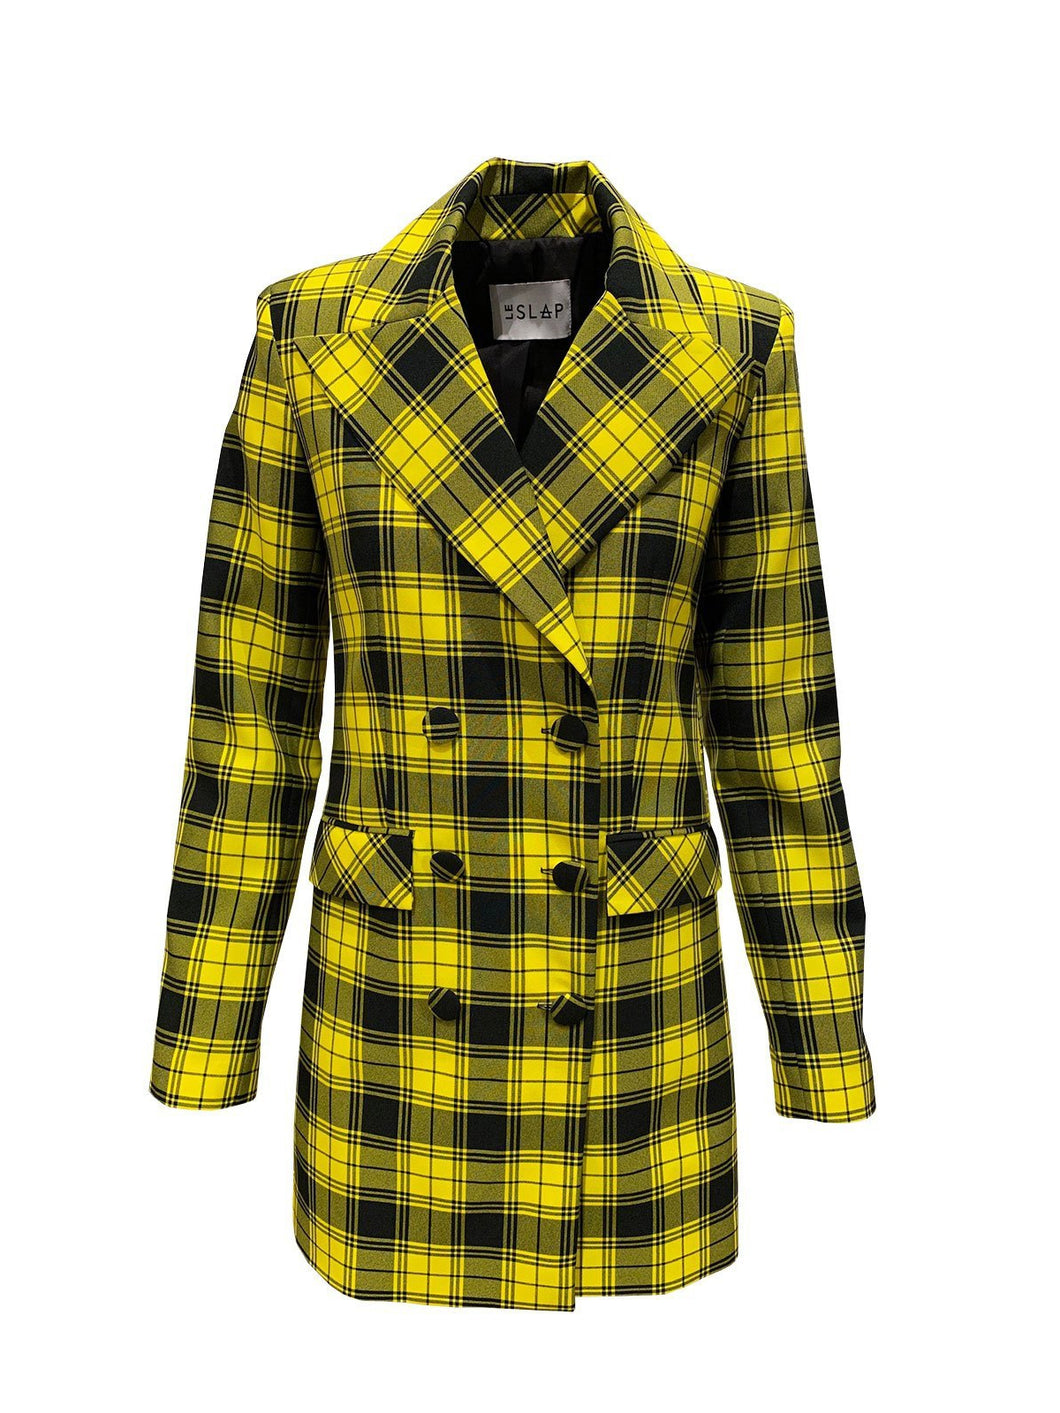 Le SLAP Warhol Yellow Check Dress/ Jacket